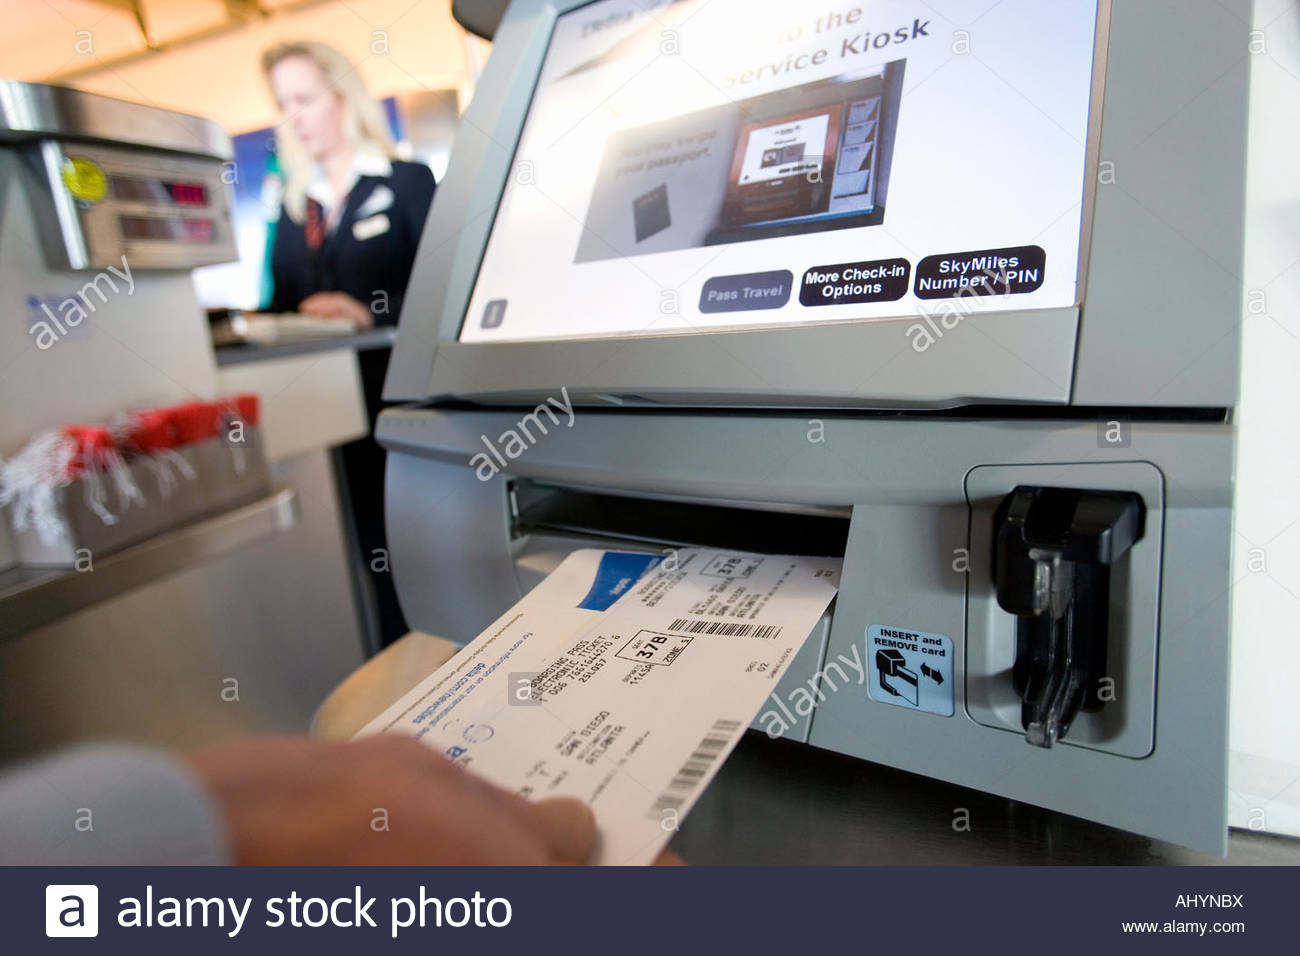 Automatic Ticket Machine Stock Photos Amp Automatic Ticket